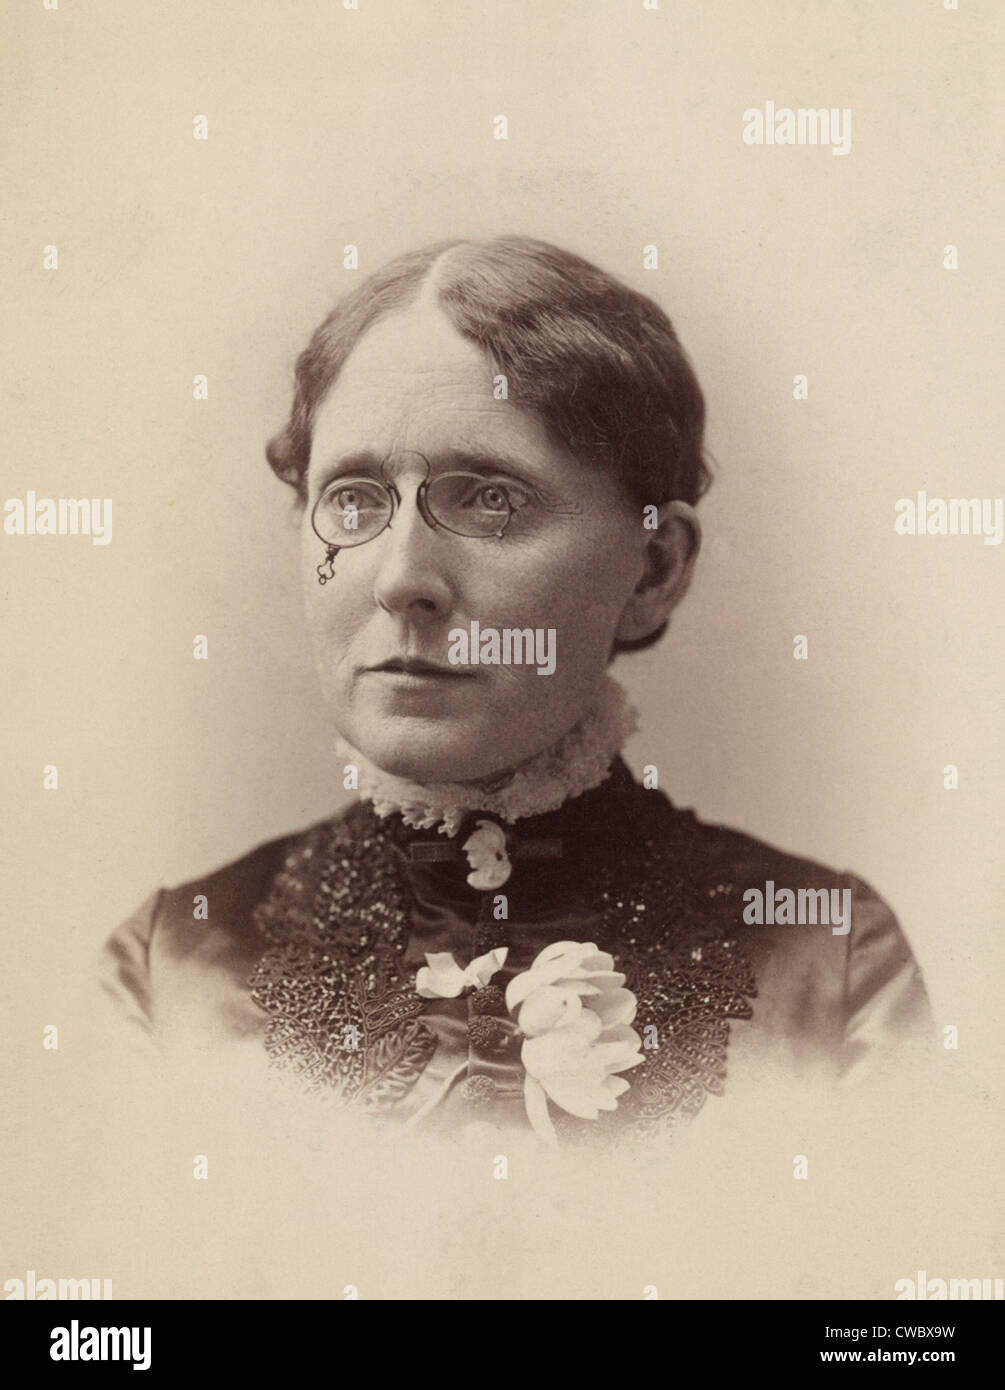 Frances Willard (1839-1898), American Temperance Reformer, et de la femme qui était une suffragette influents Photo Stock